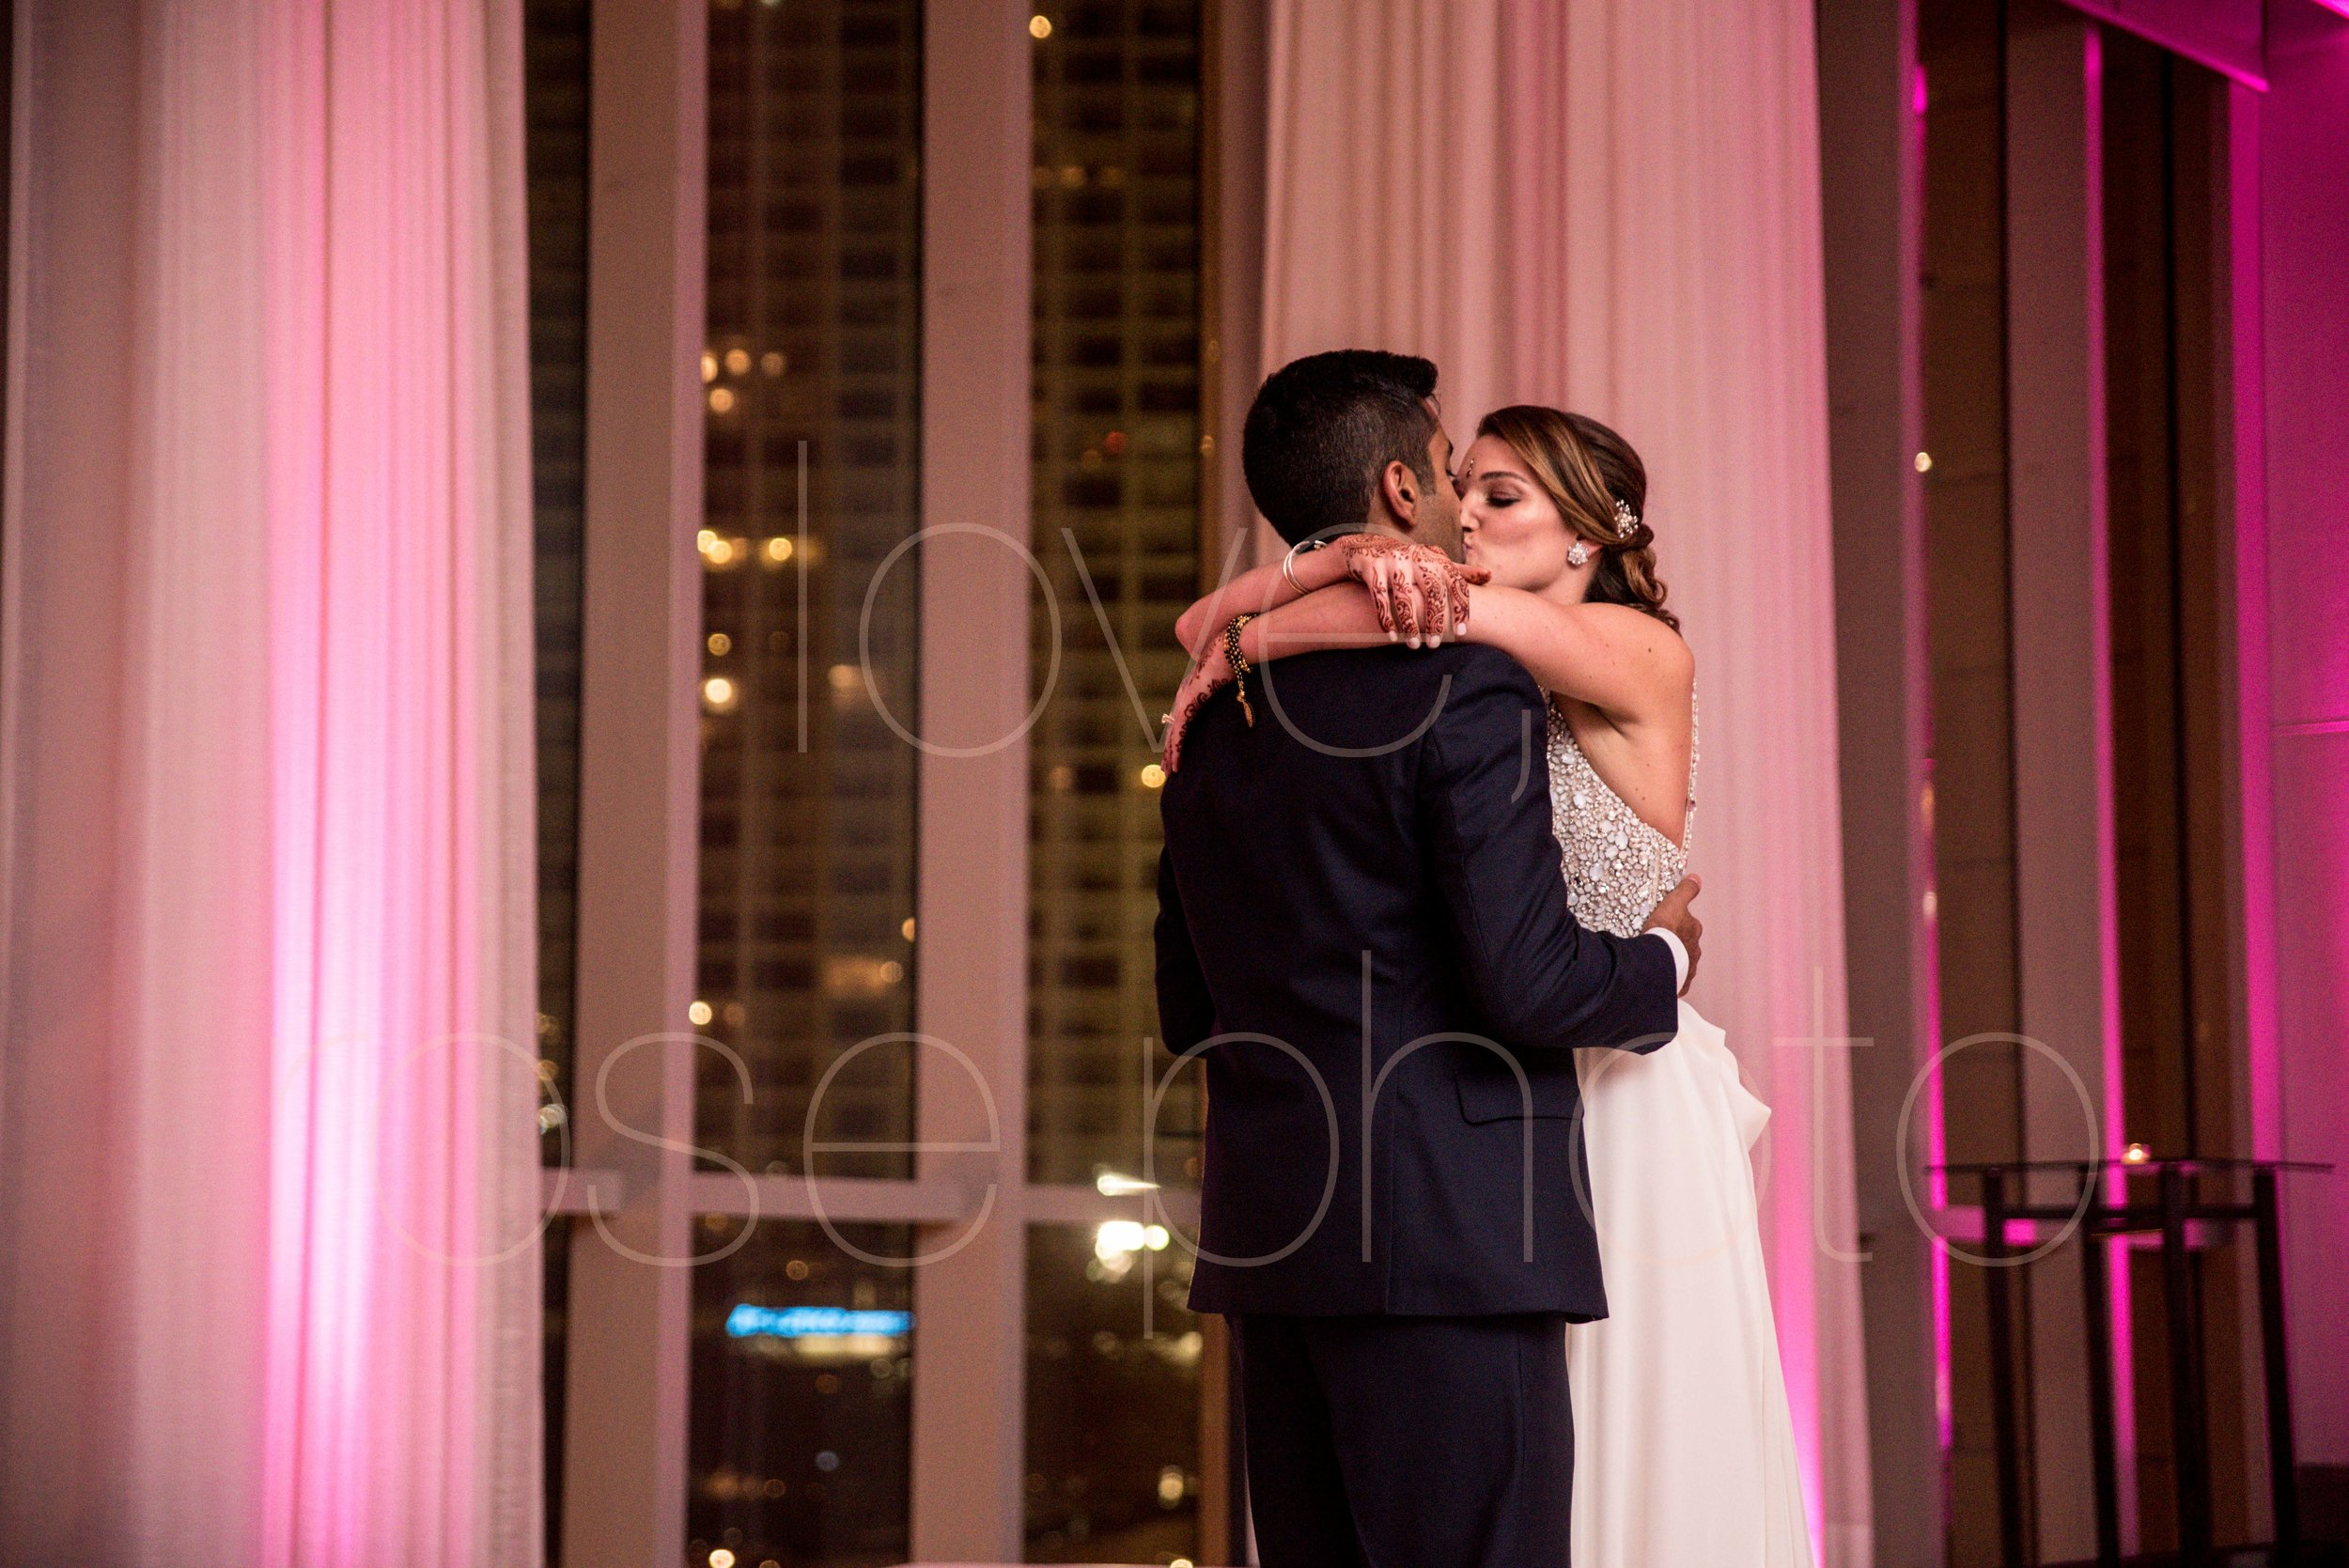 Best of Chicago wedidngphotography LondonHouse Indian wedding -28.jpg